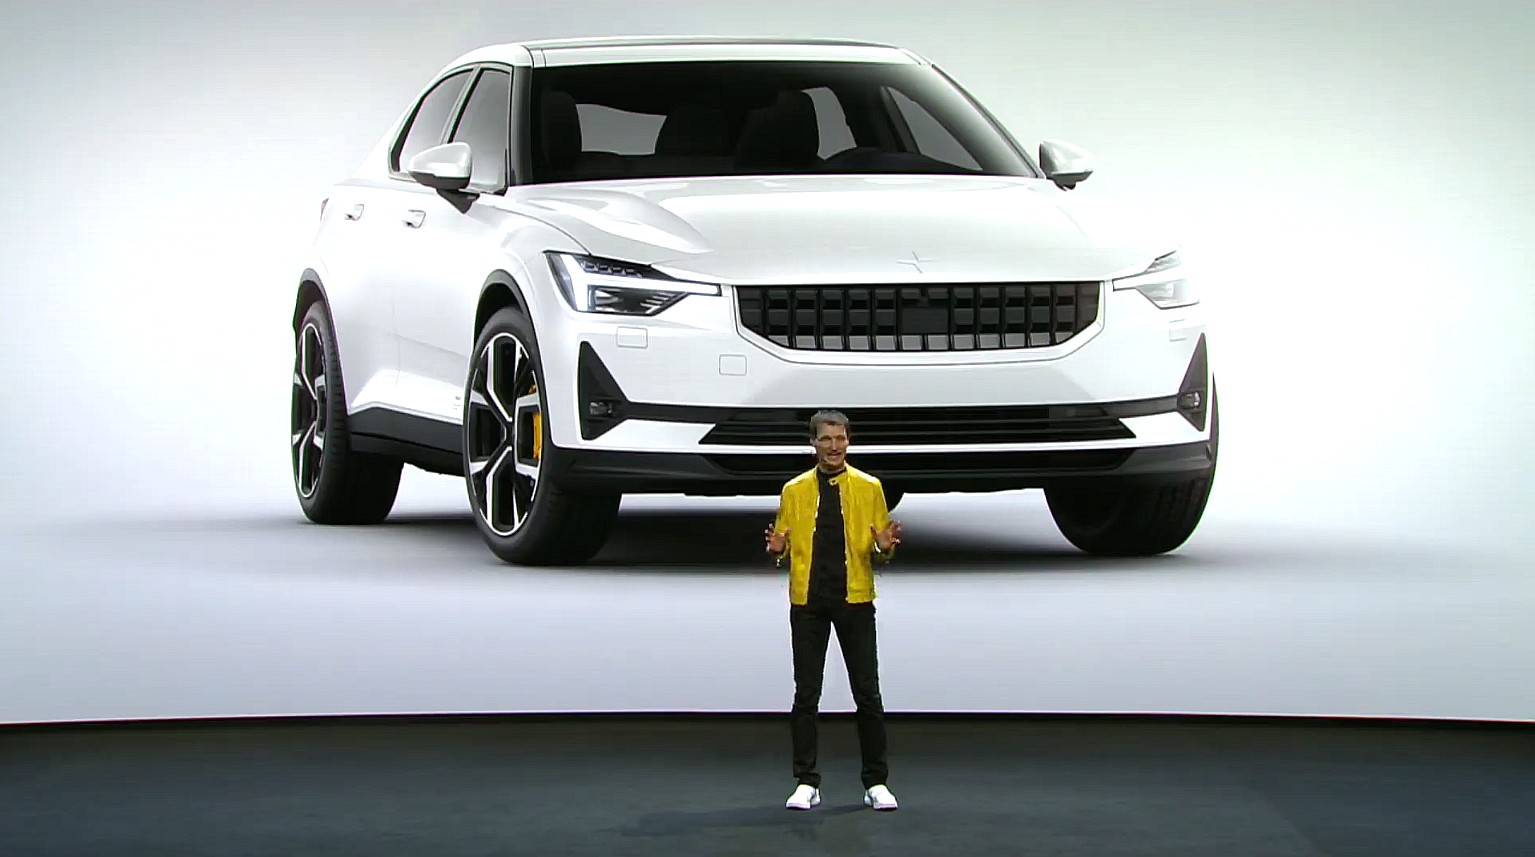 Volvo S Polestar 2 Is A Dual Motor 275 Mile 78 Kwh Tesla Model 3 Compeor